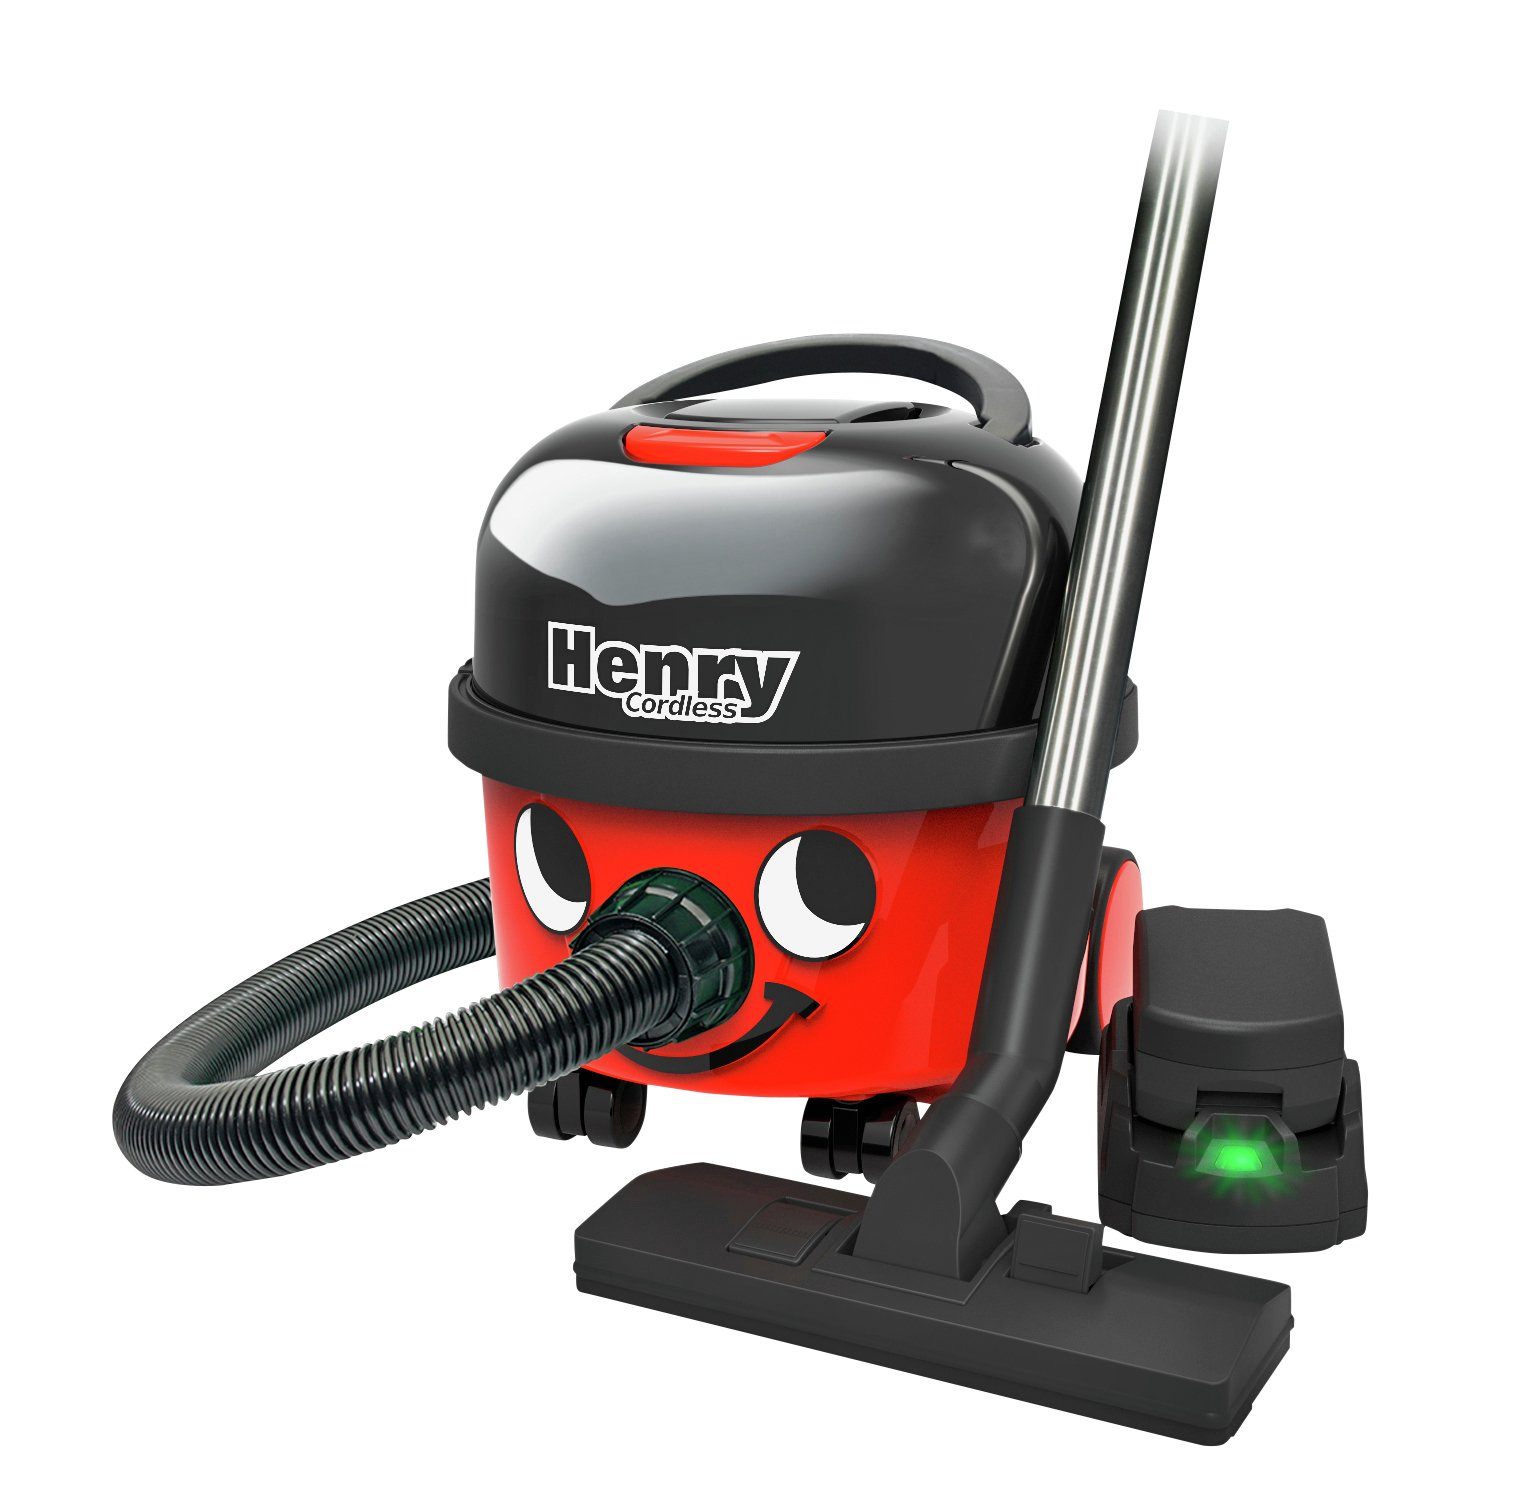 Henry HVB160/1 Bagged Cordless Cylinder Vacuum Cleaner